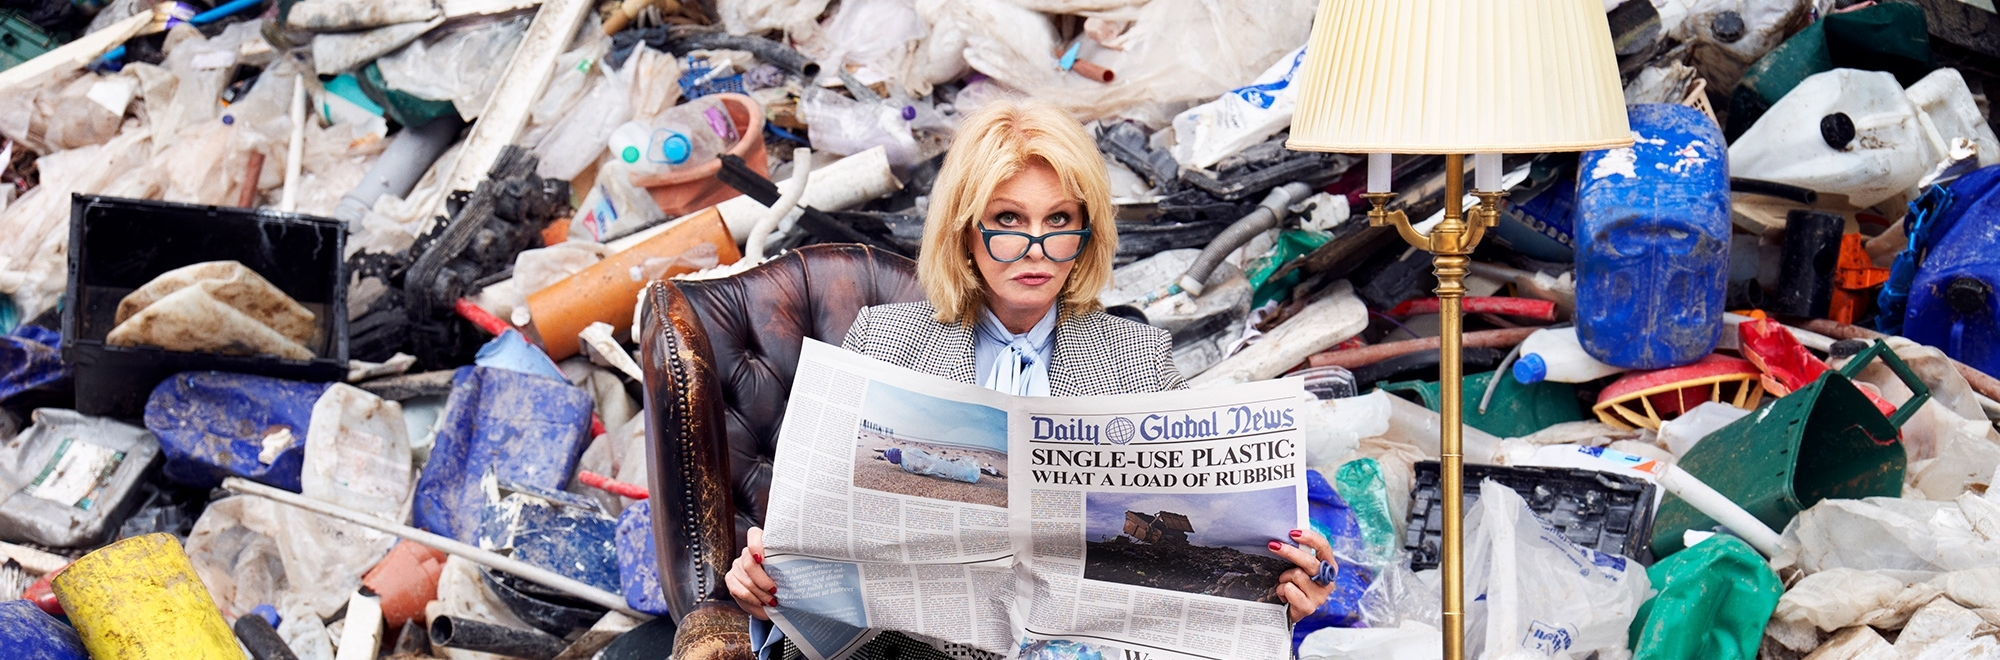 Iris and BRITA enlist Joanna Lumley to help the nation with 'Green Guilt' one step at a time